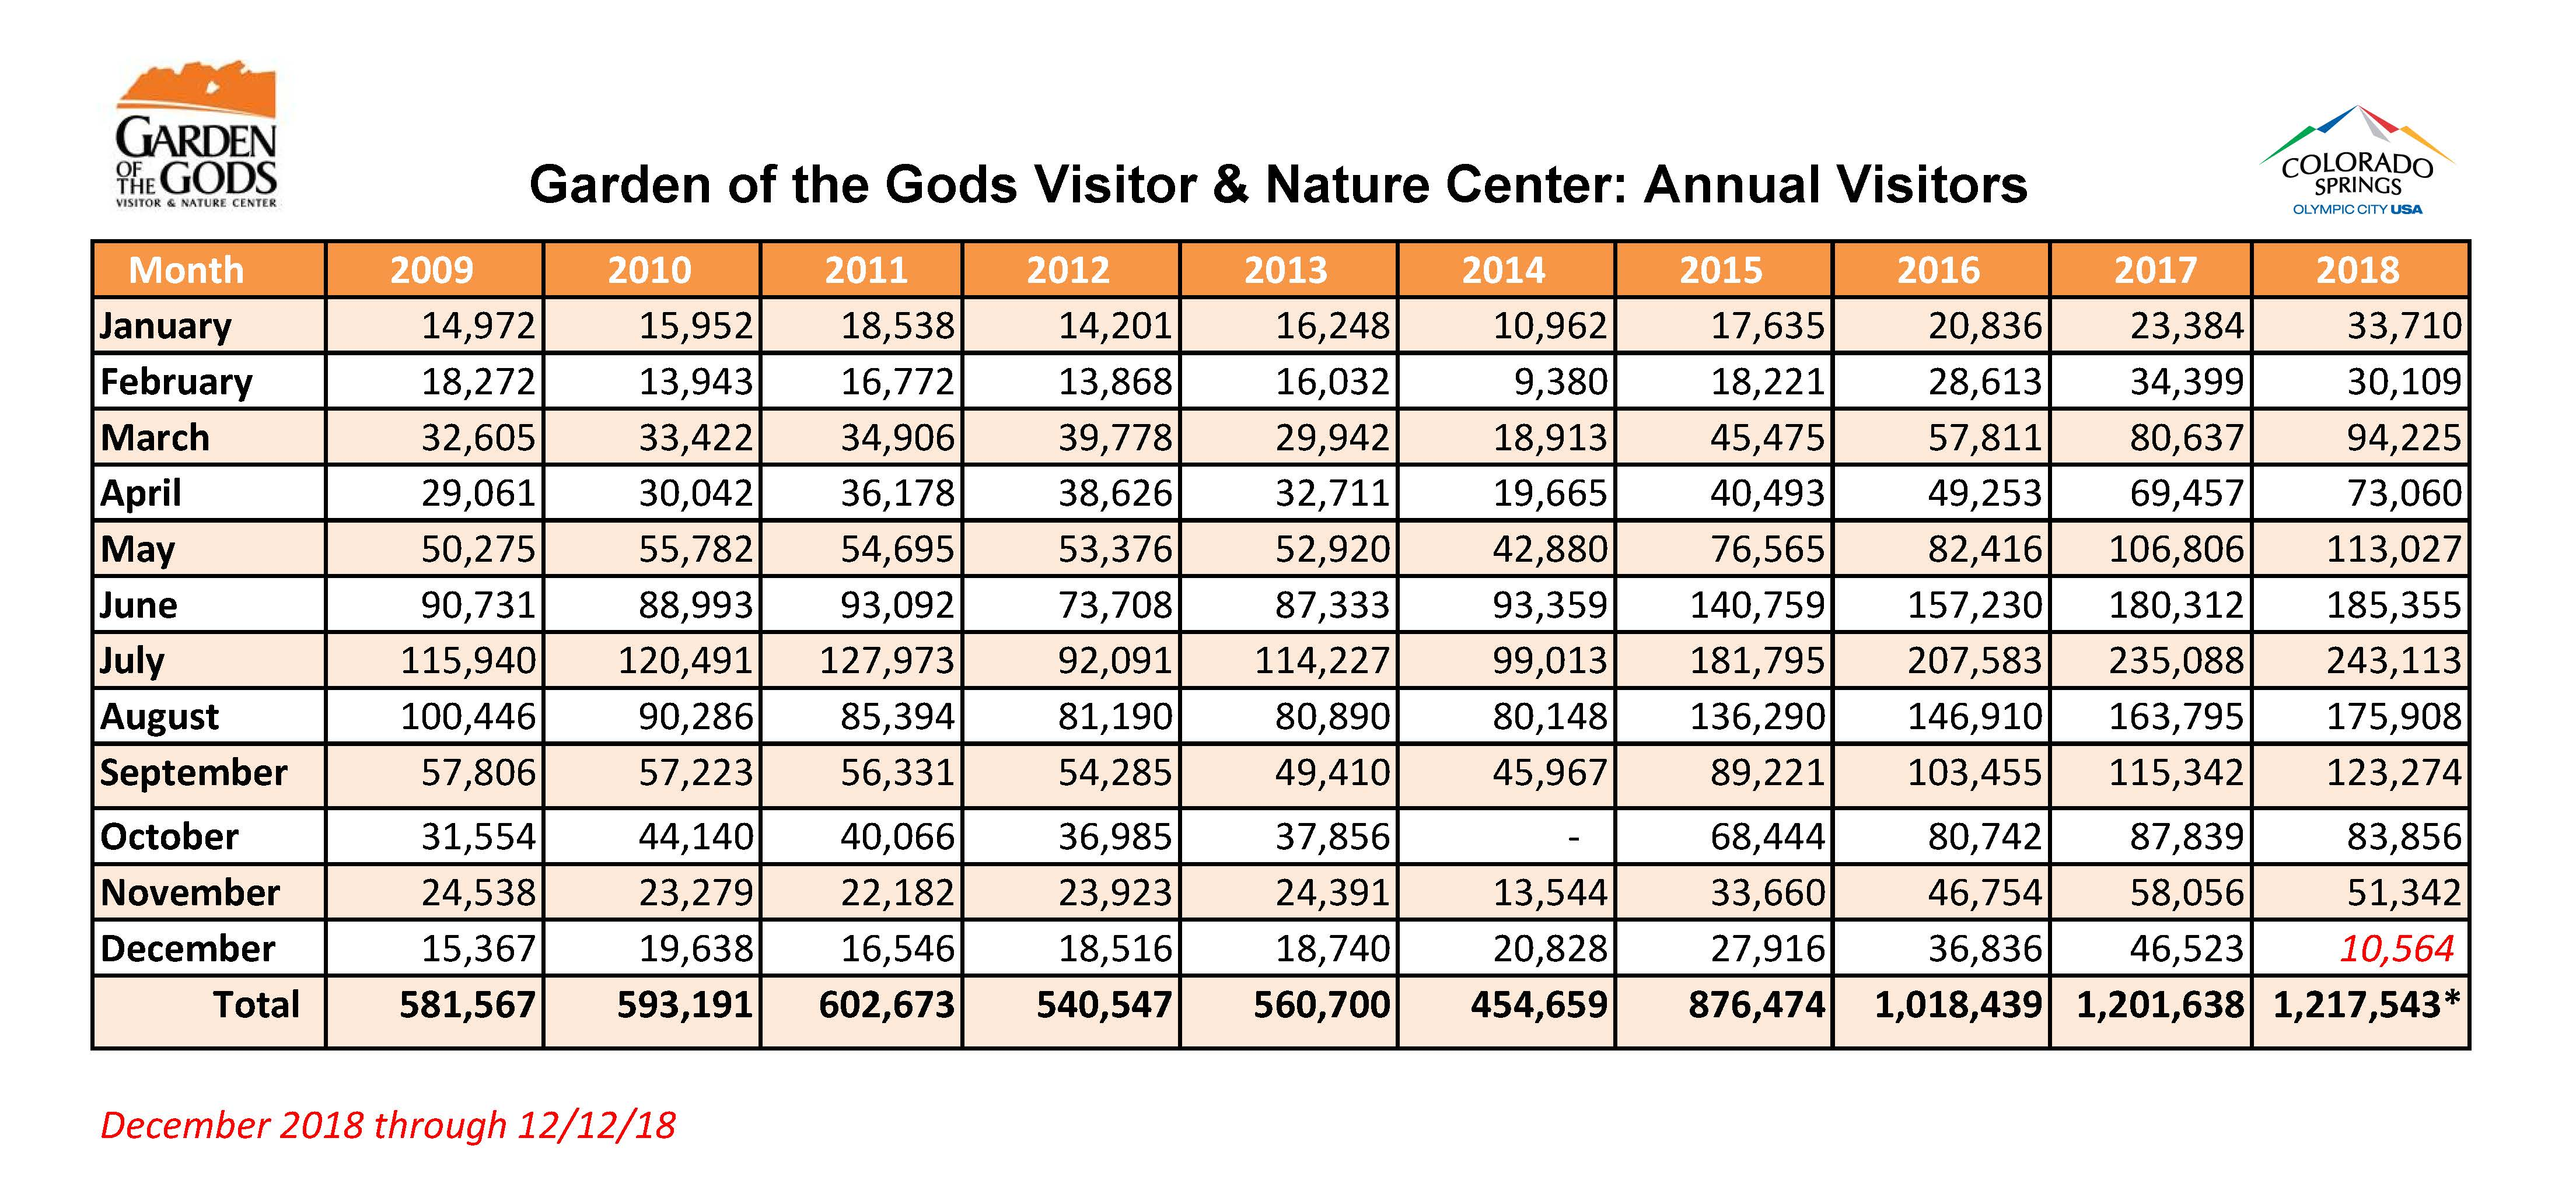 chart showing increasing visitor numbers from 2009 (581,567 visitors) through 2018 (1,217,543 visitors)